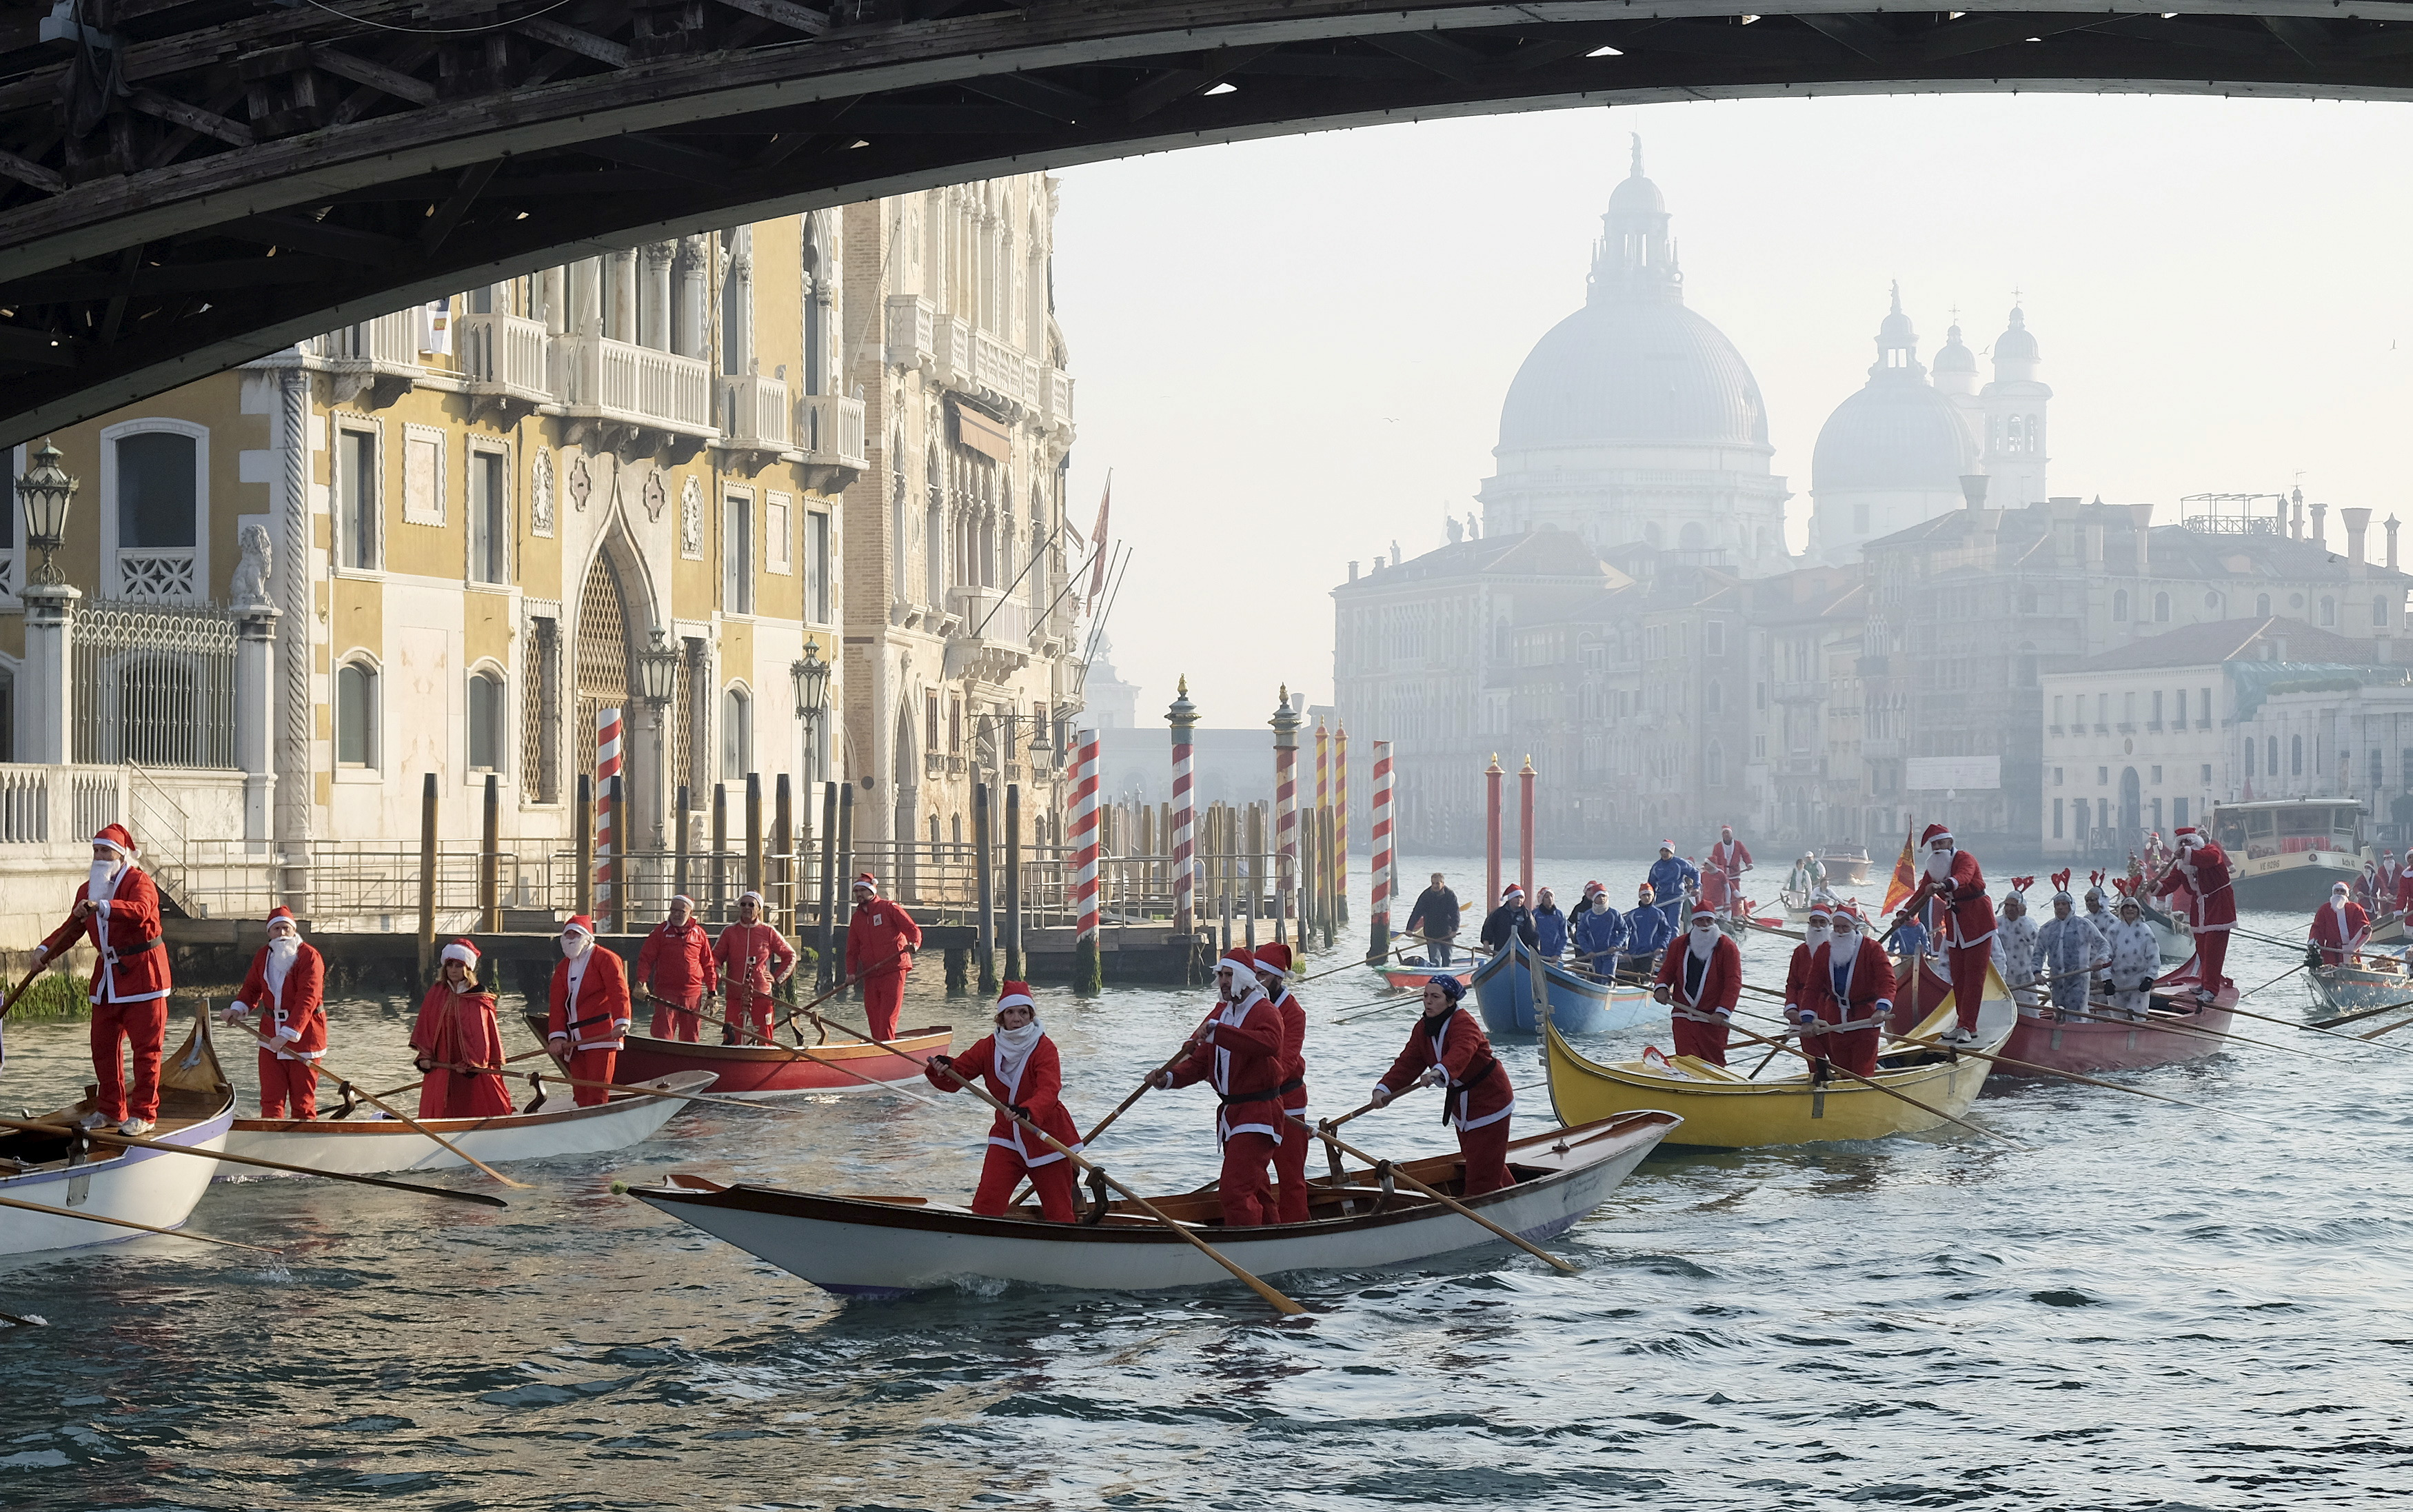 People dressed as Santa Claus row boats on Venice's Grand Canal, in northern Italy, December 20, 2015. Photo by: Manuel Silvestri/Reuters